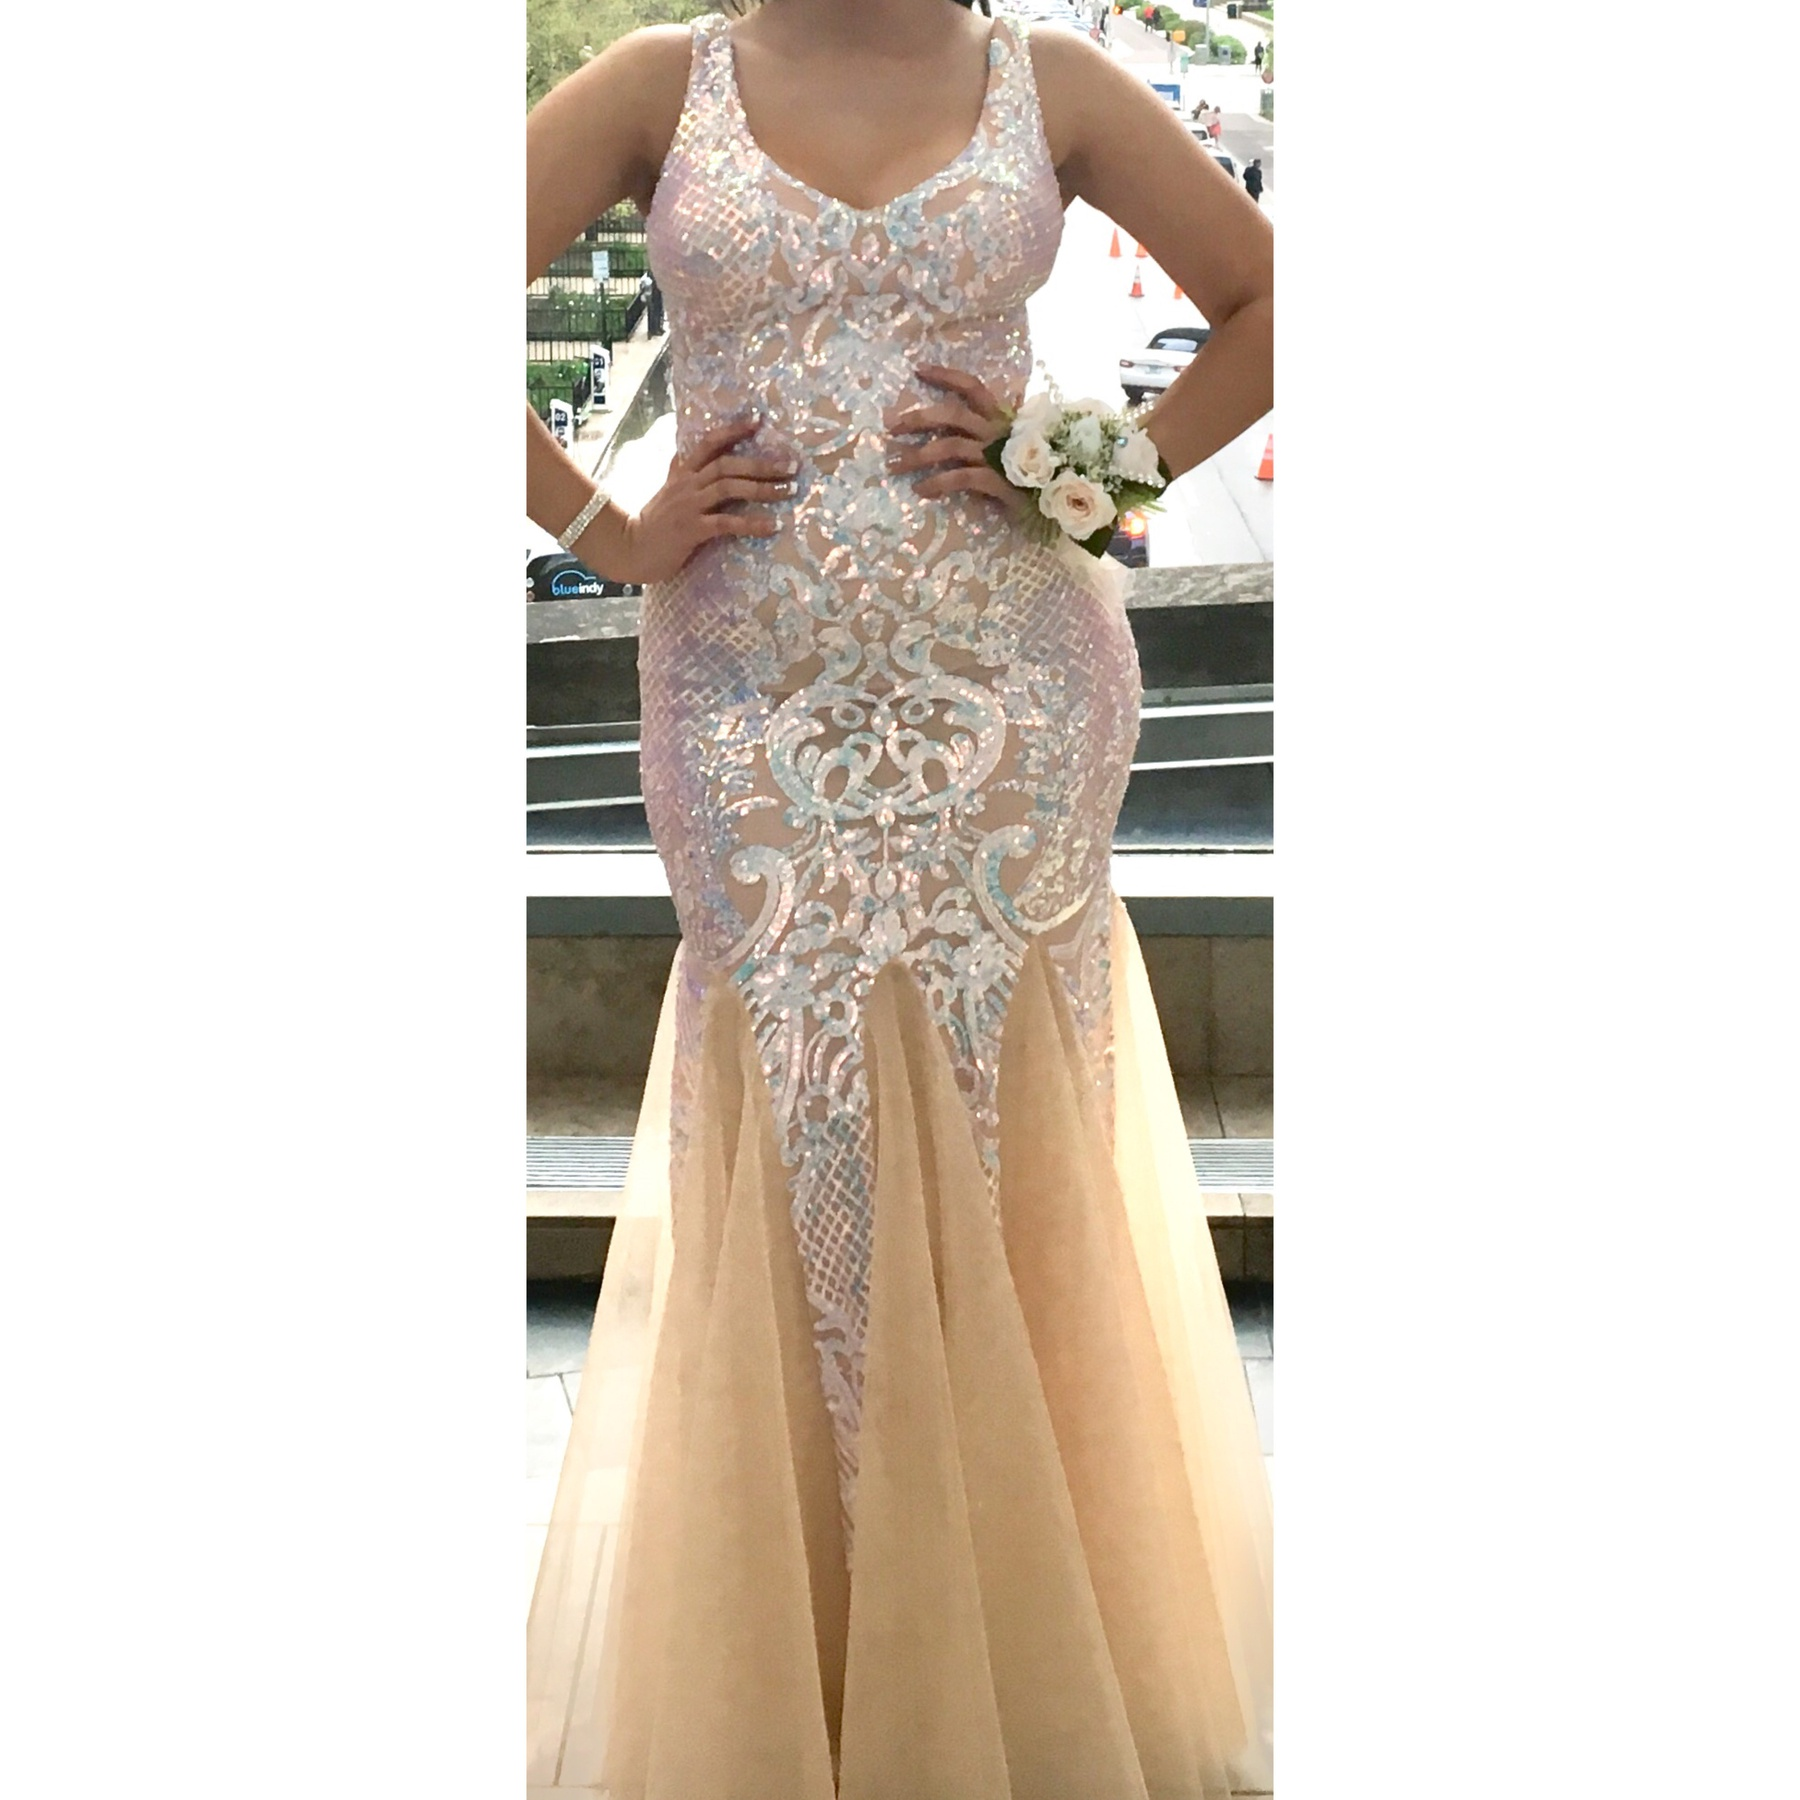 Queenly | Buy and sell prom, pageant, and formal dresses